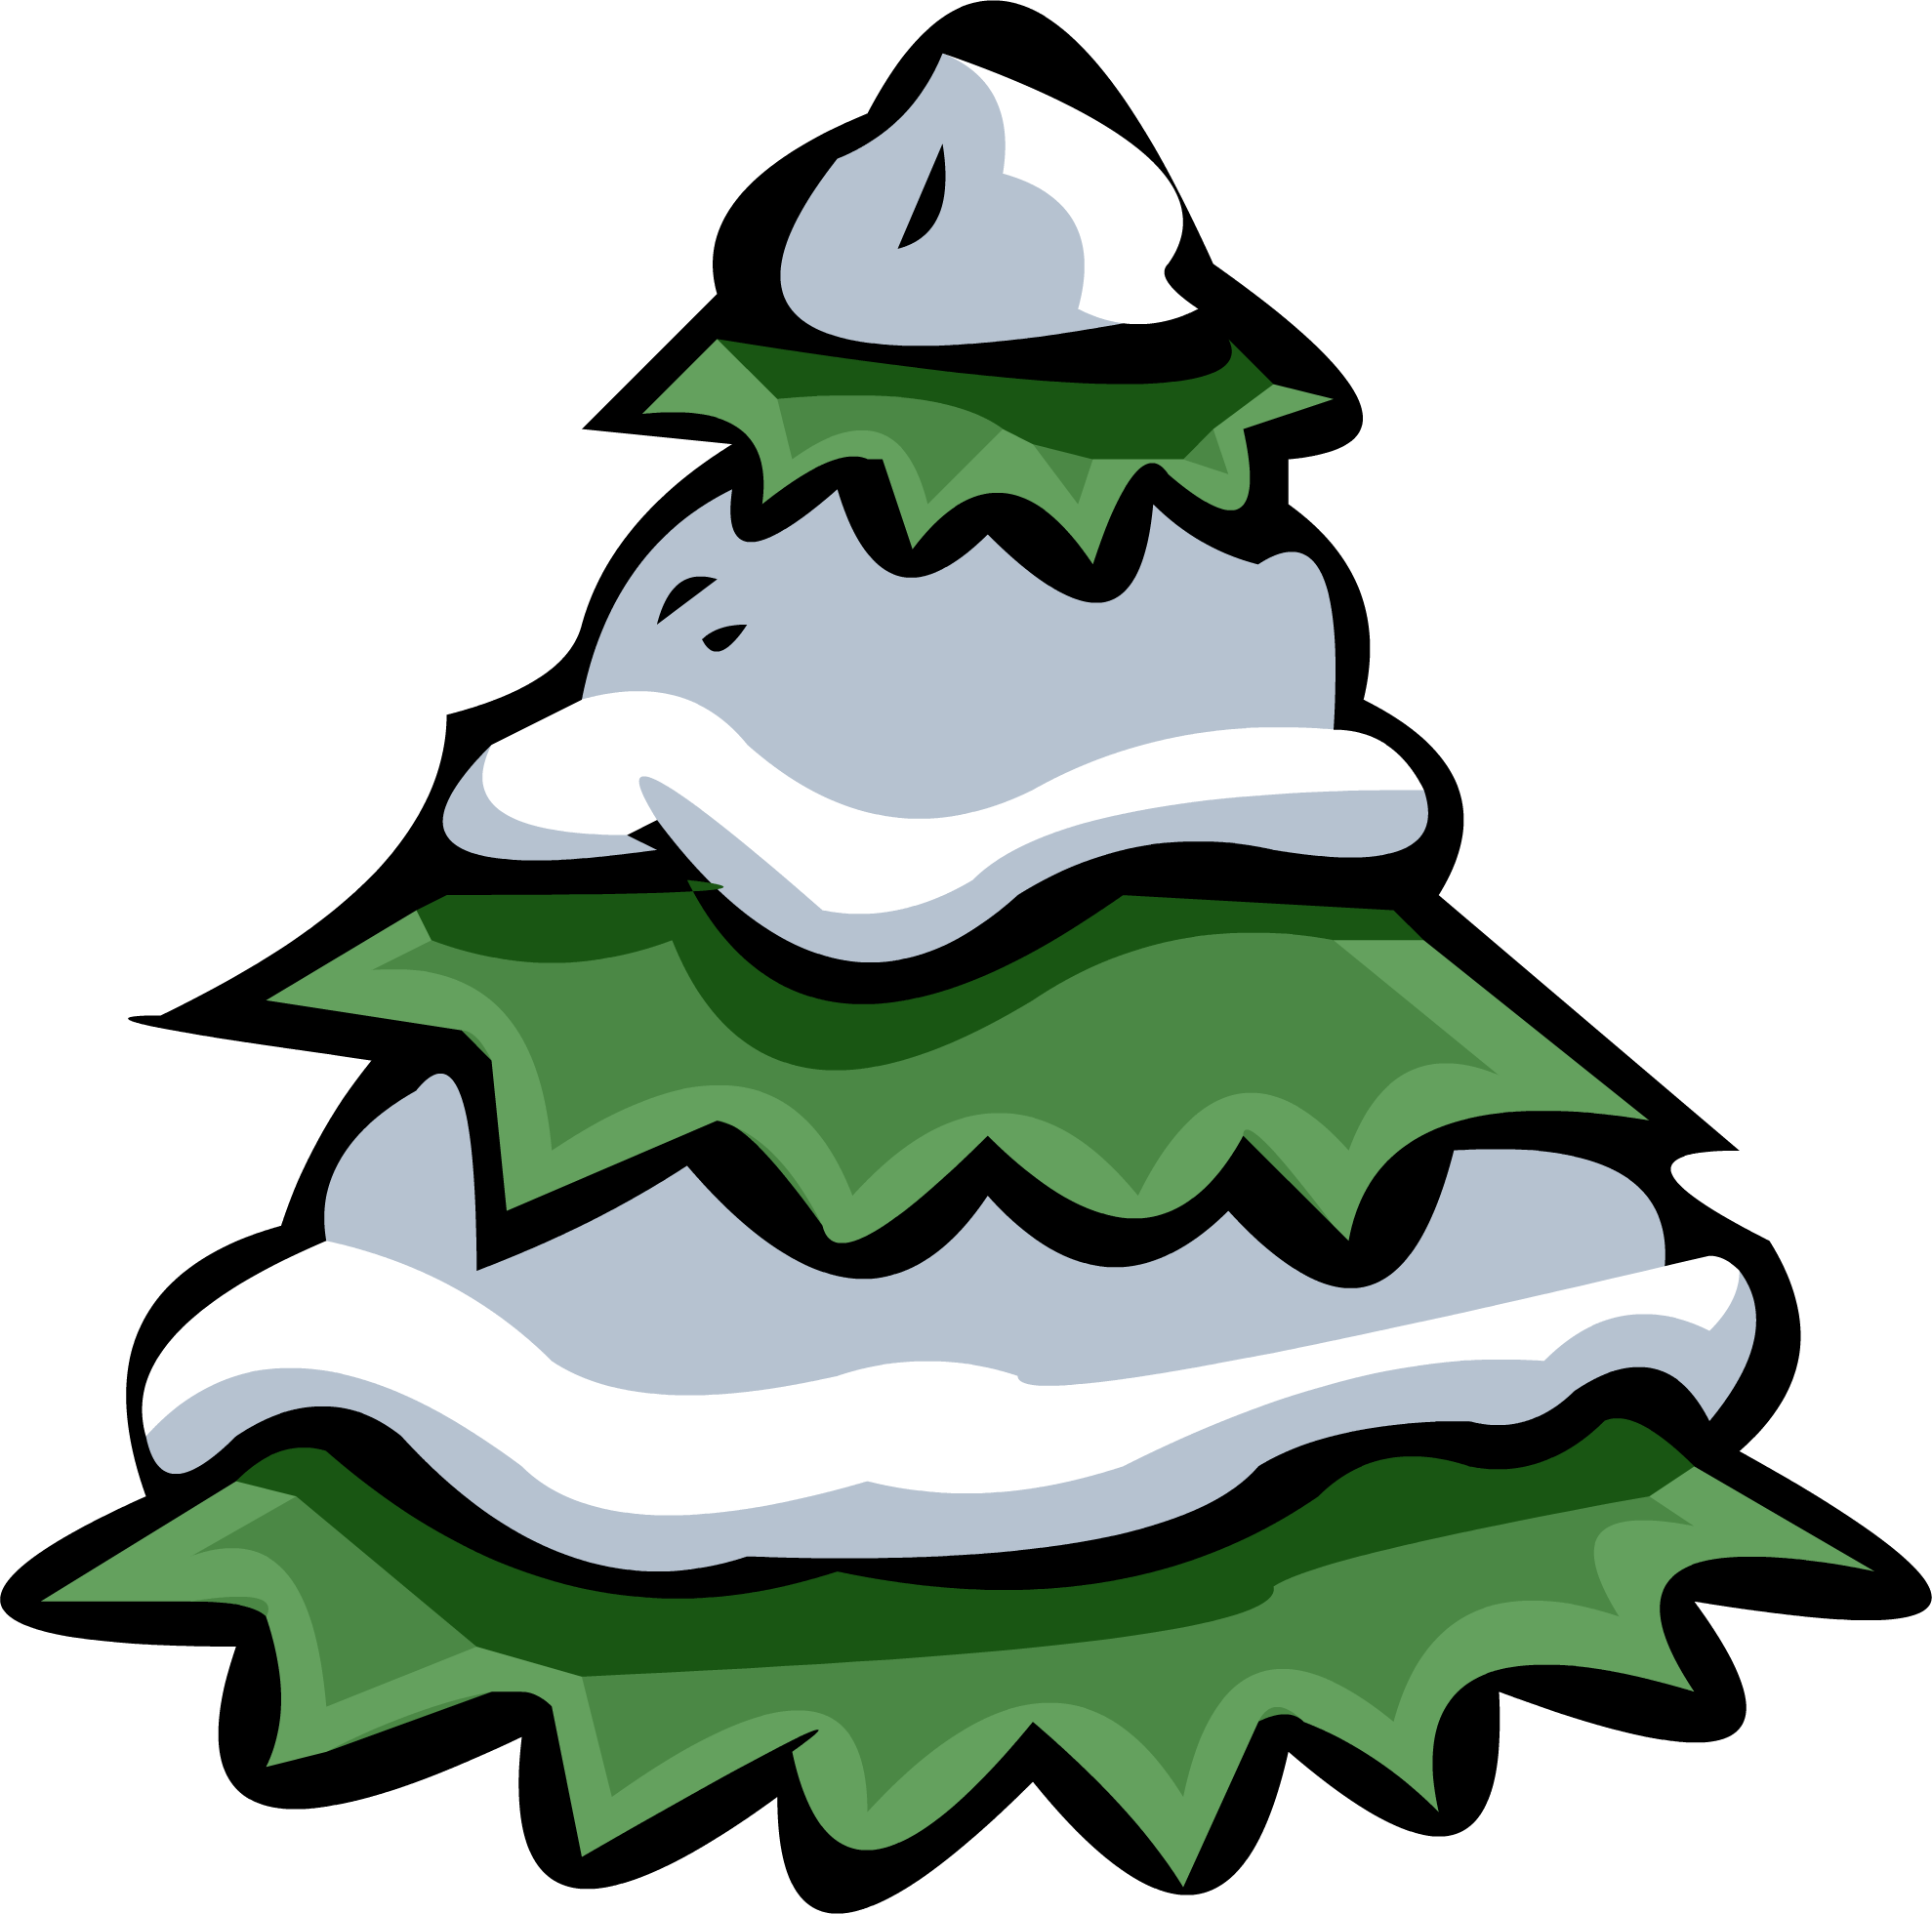 Floor clipart snowy. Image tree png club